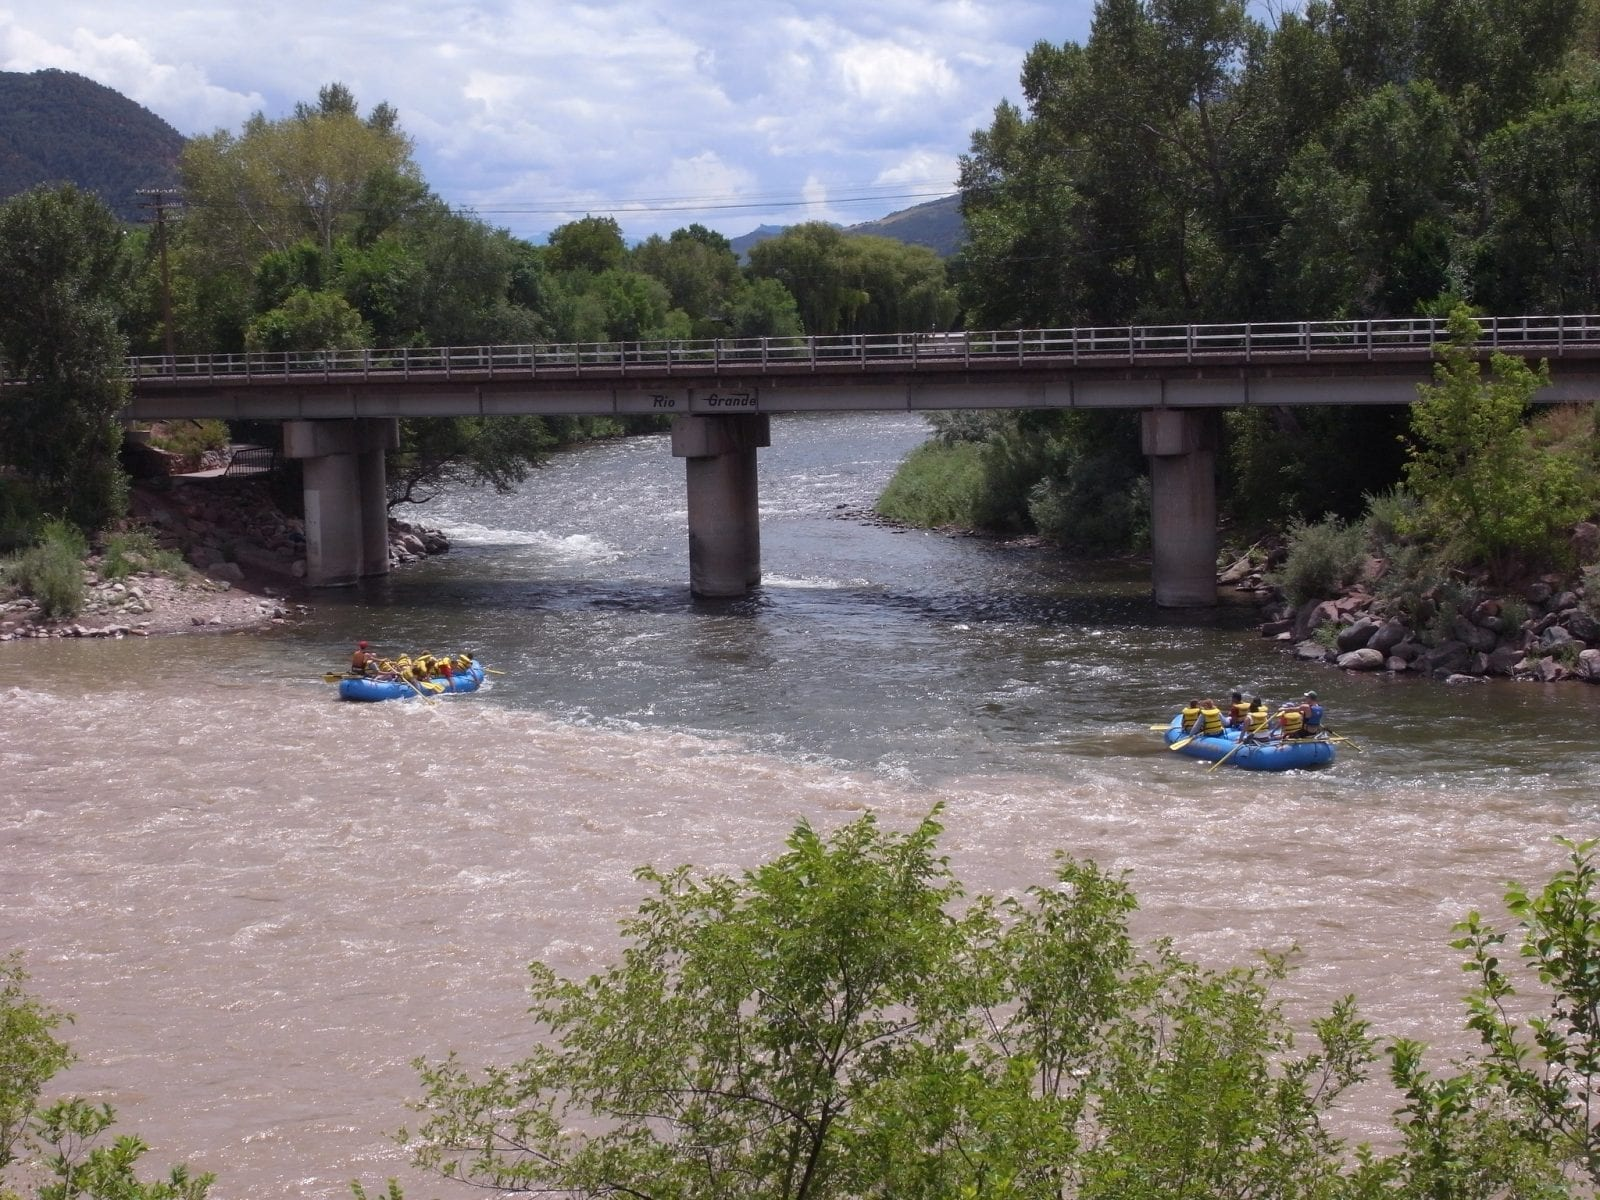 Image of two rafts floating down the Roaring Fork River in Colorado